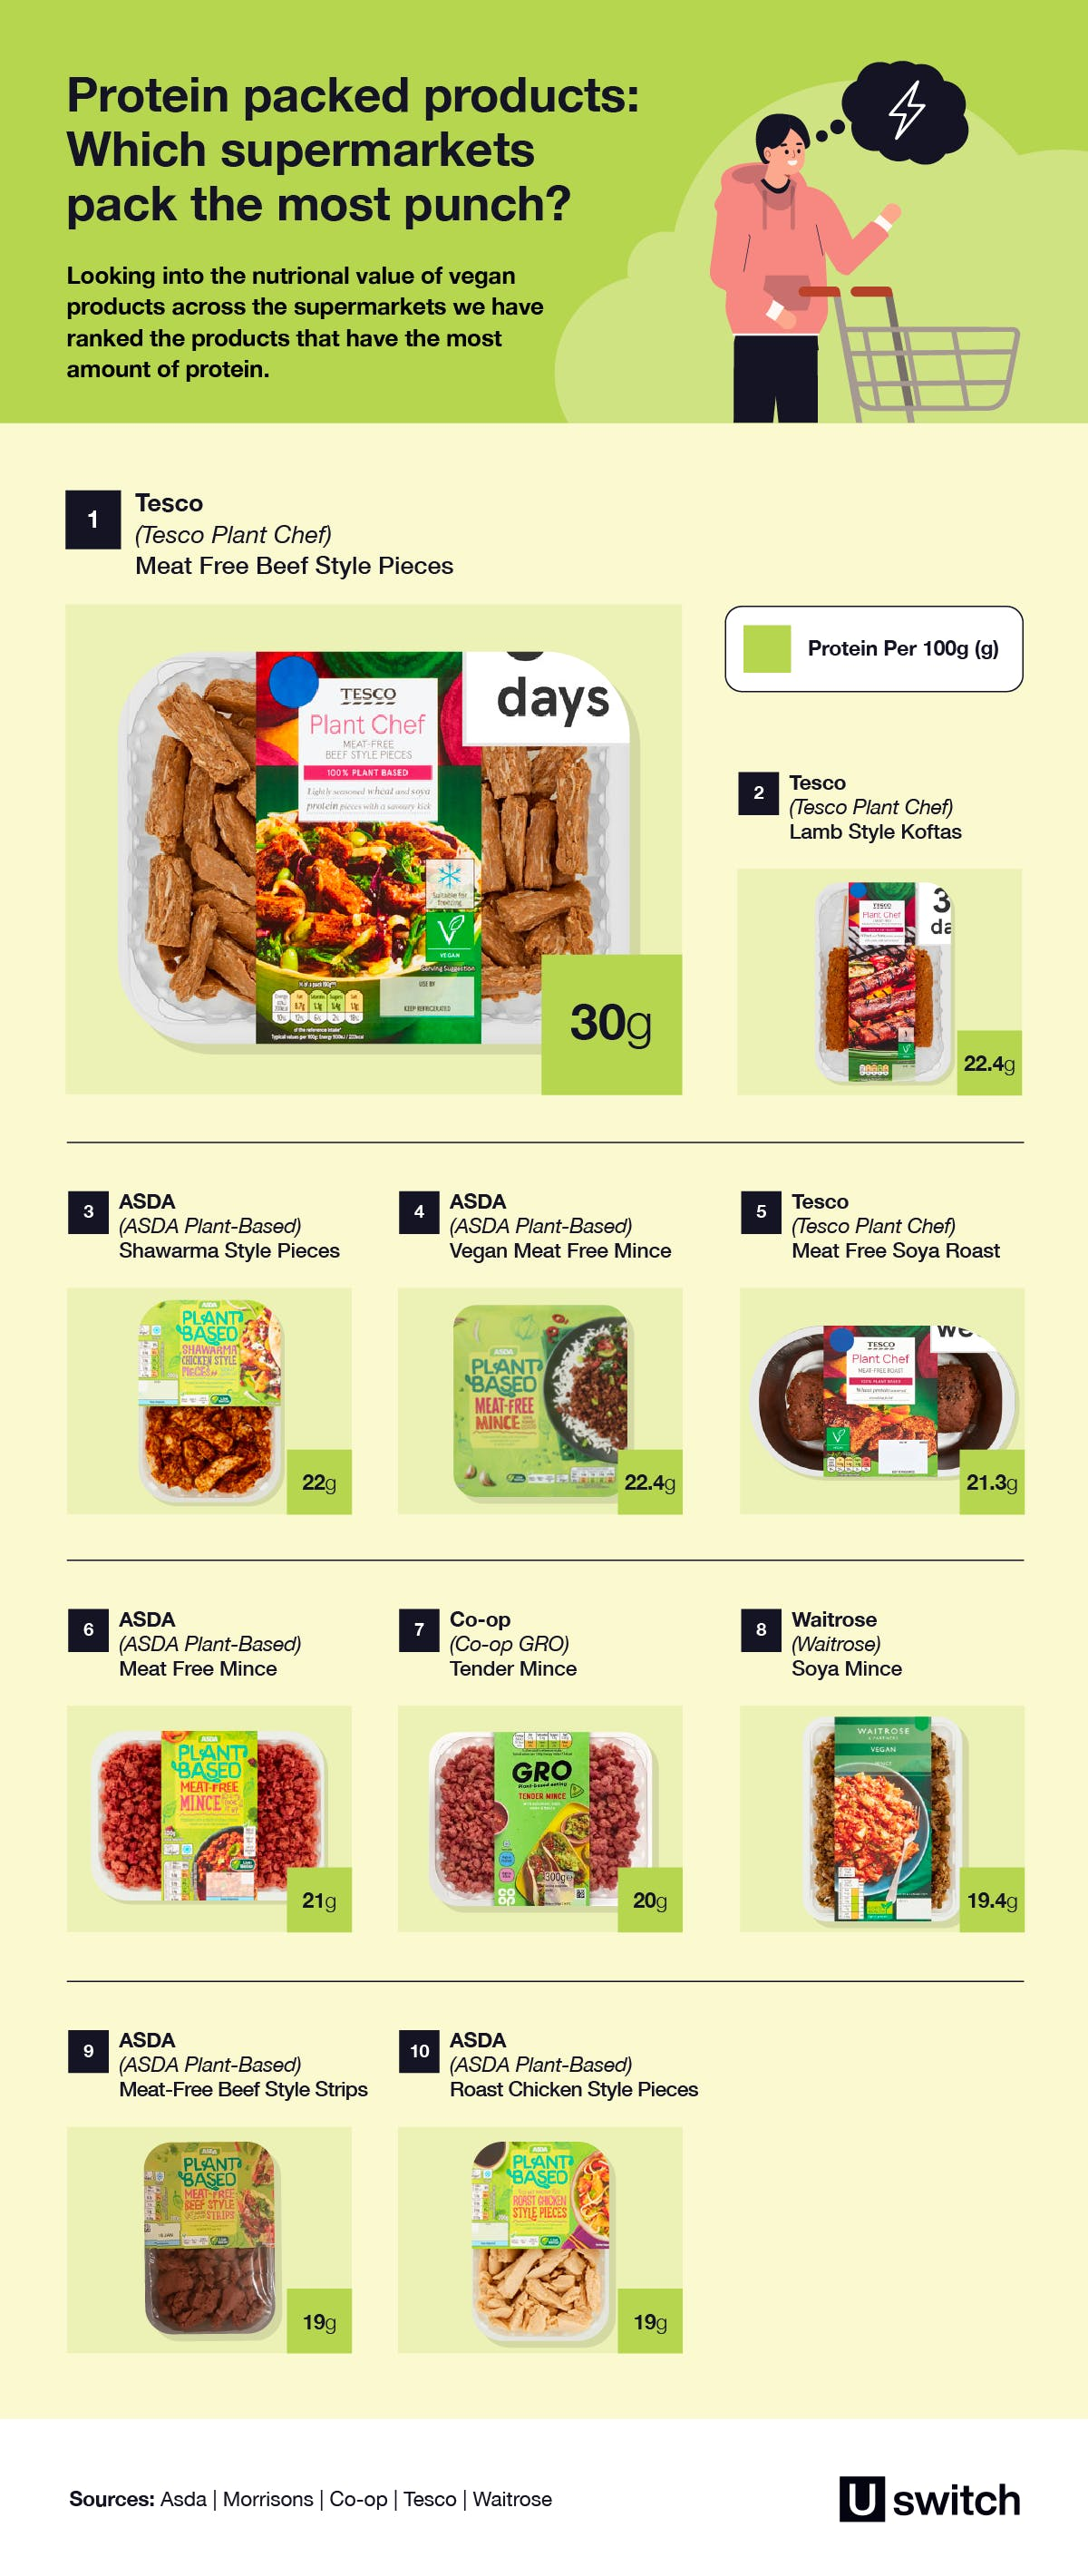 Protein packed products: Which supermarkets pack the most punch? table.